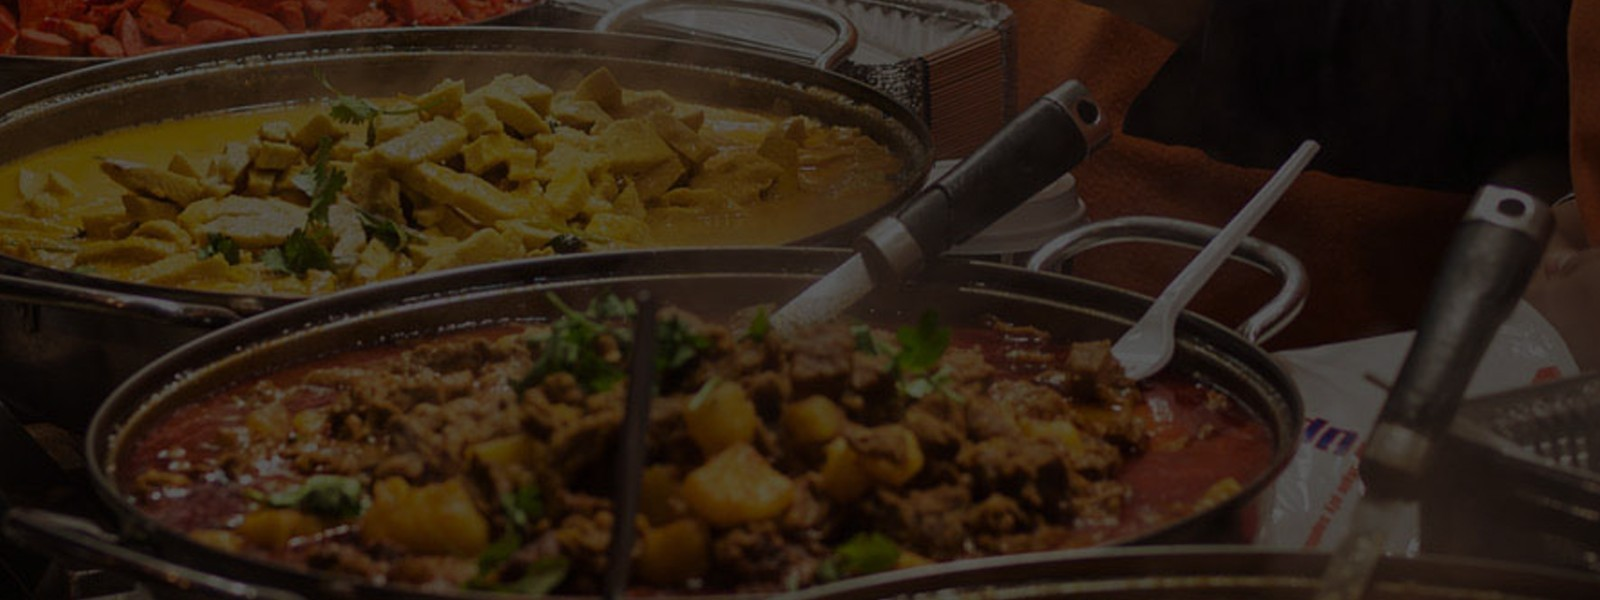 WINTER SPECIAL LUNCH BUFFET $14.95 11:30 AM to 2:30 PM Salads, Coolers, Appetizers, Mains, Butter chicken, Desserts